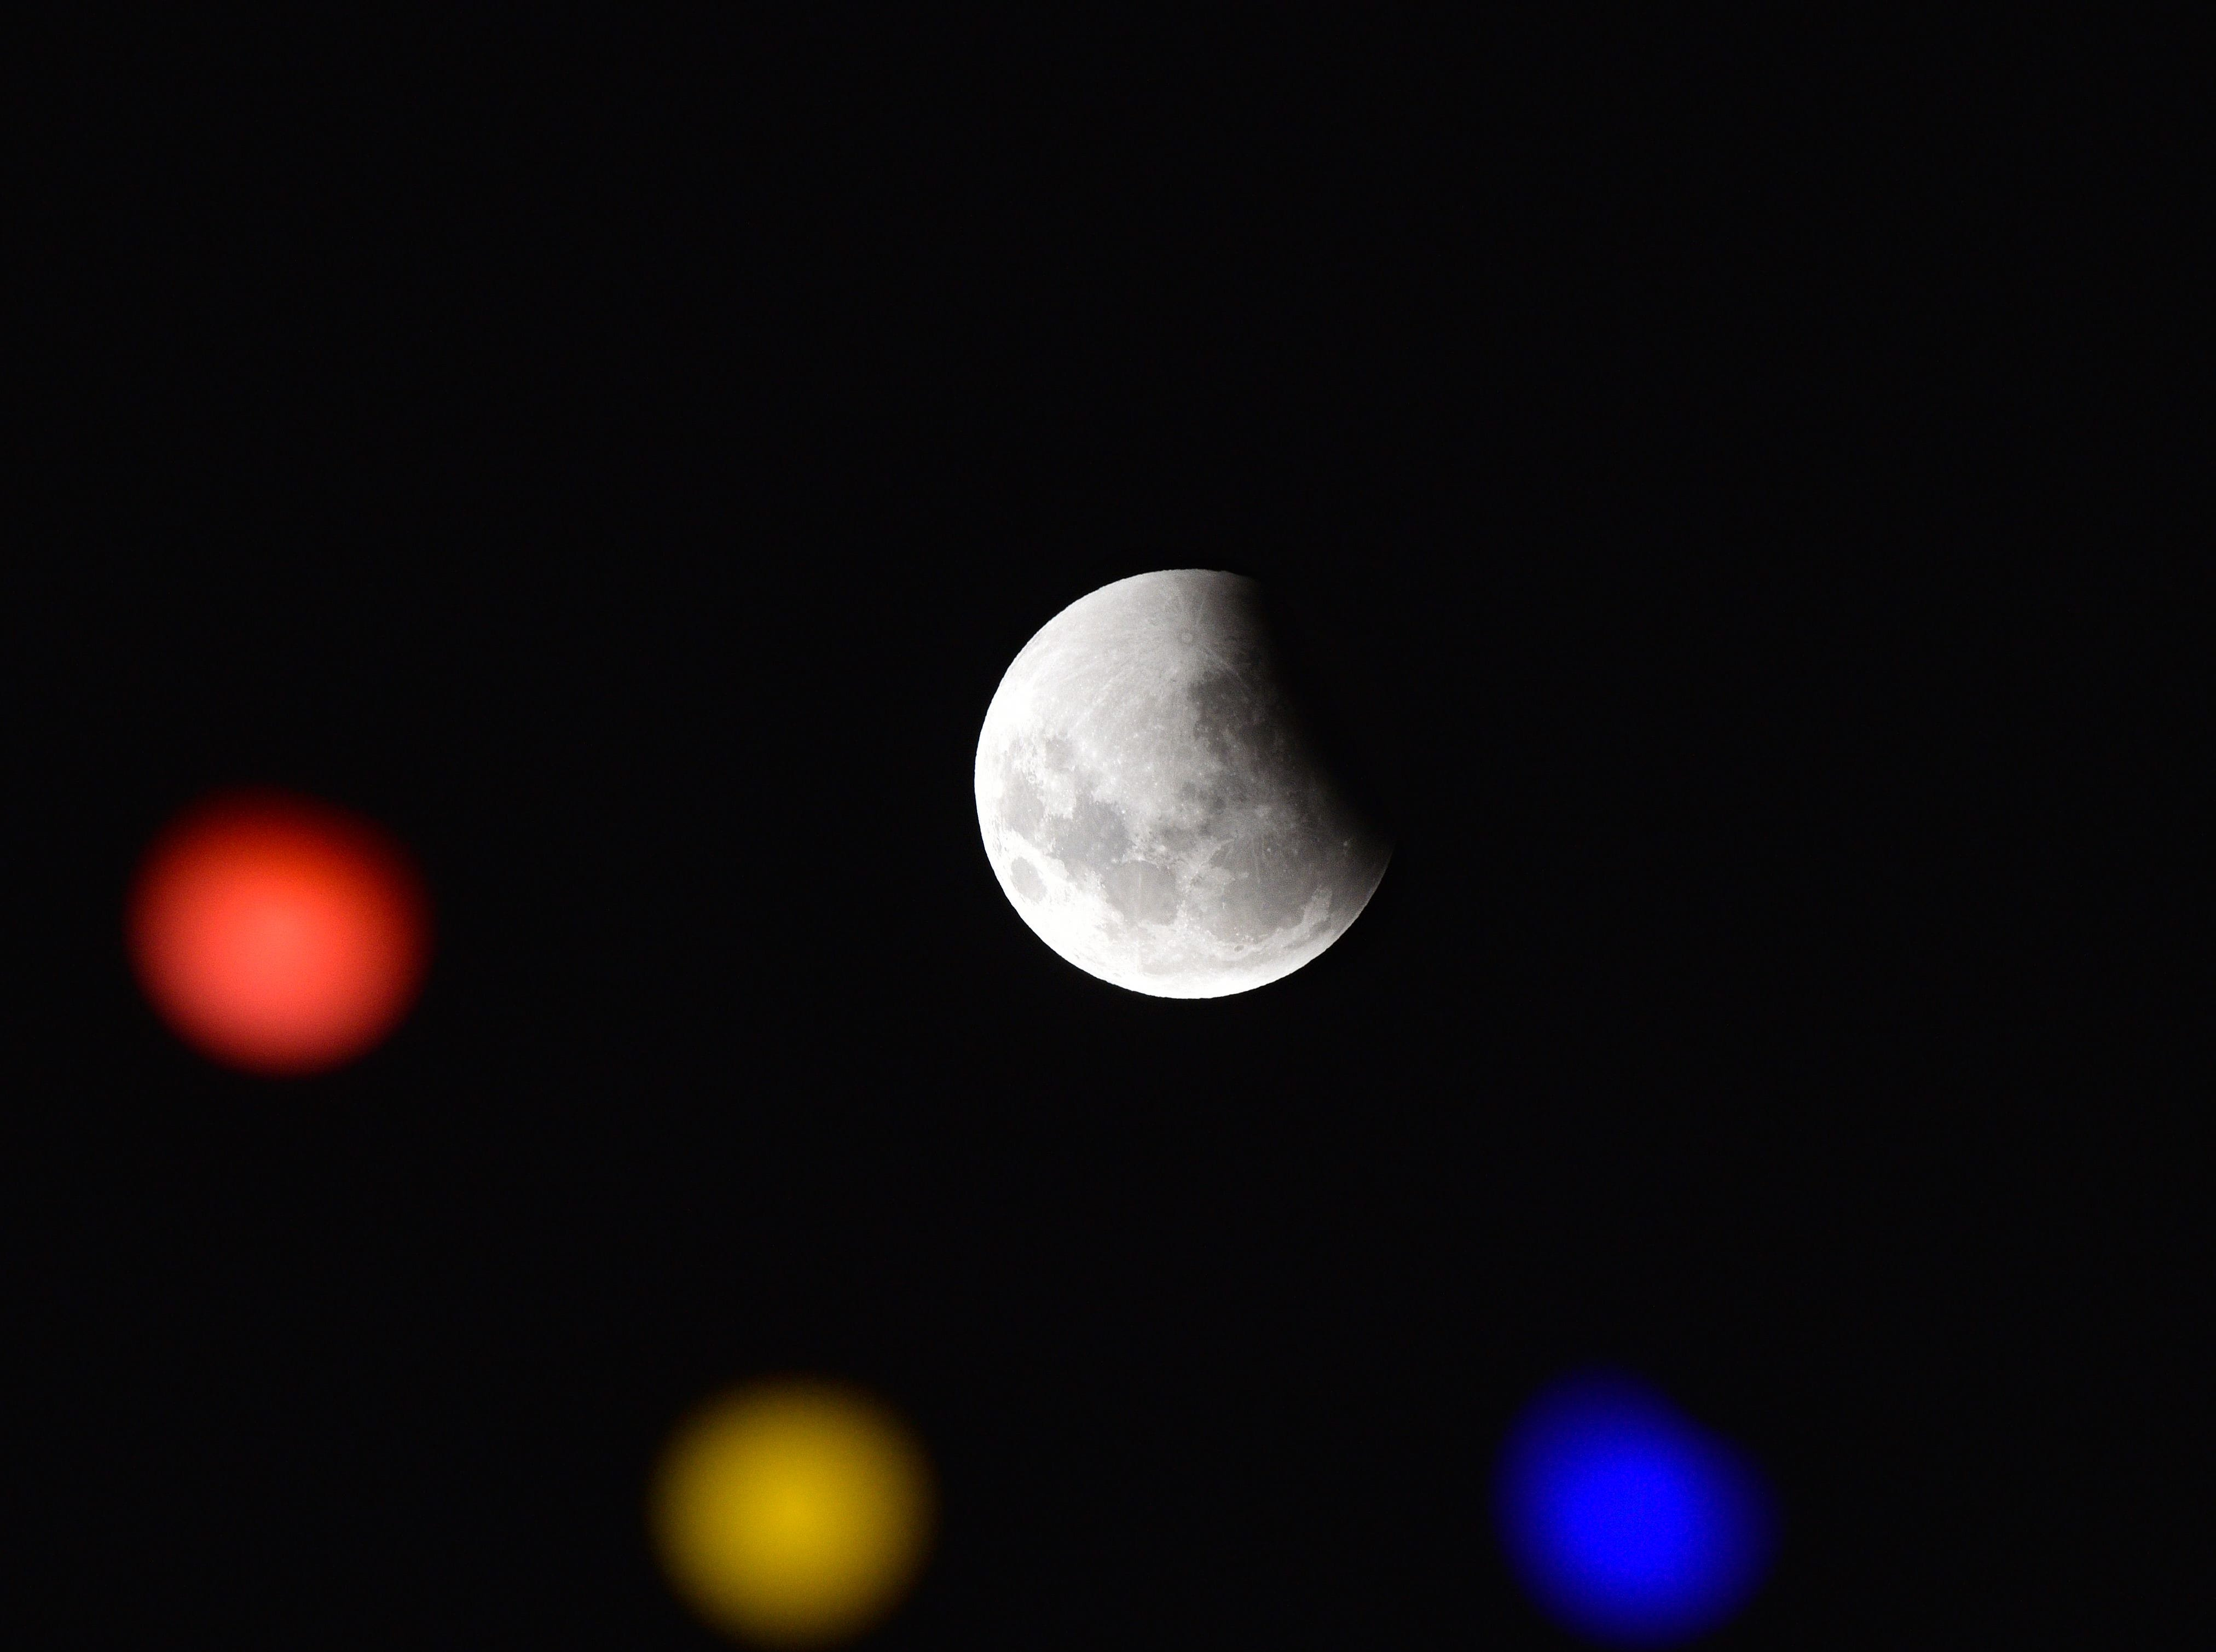 A total eclipse begins as the full moon shines over Montevideo on January 21, 2019 while colour lights decorate 18 de julio Avenue ahead of carnival festivities in Uruguay. - An unusual set of celestial circumstances comes together Sunday for skywatchers in Europe, Africa and the Americas, where a total lunar eclipse may be glimpsed, offering a view of a large, red Moon. (Photo by Mariana SUAREZ / AFP)MARIANA SUAREZ/AFP/Getty Images